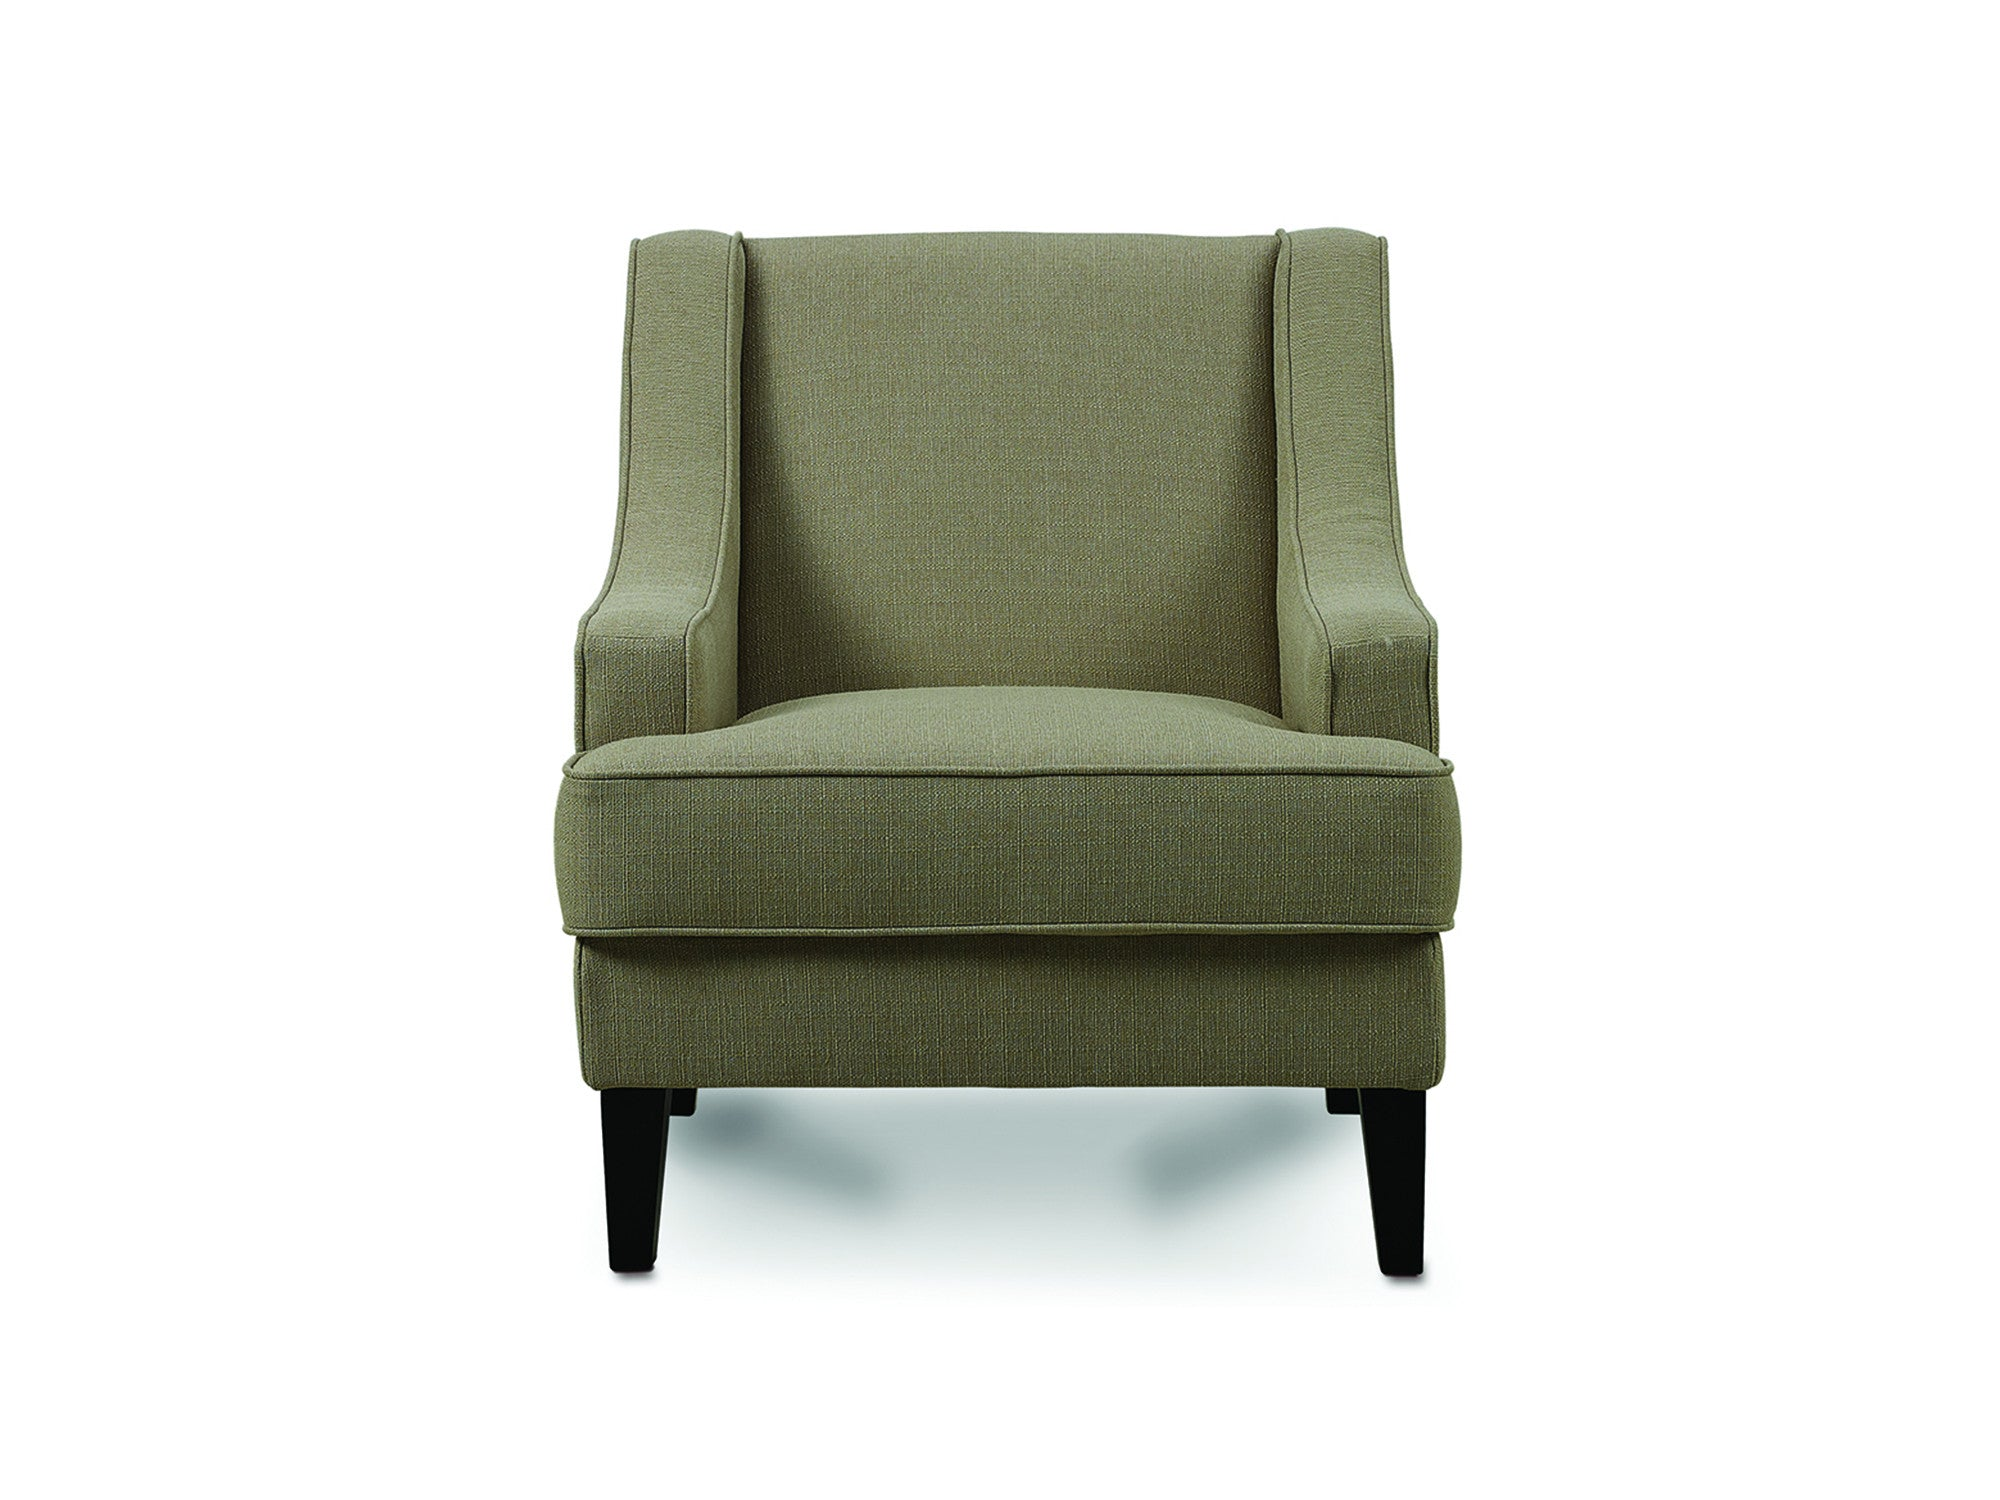 Newell furniture l smith chair oatmeal meubles newell for Meubles newell montreal